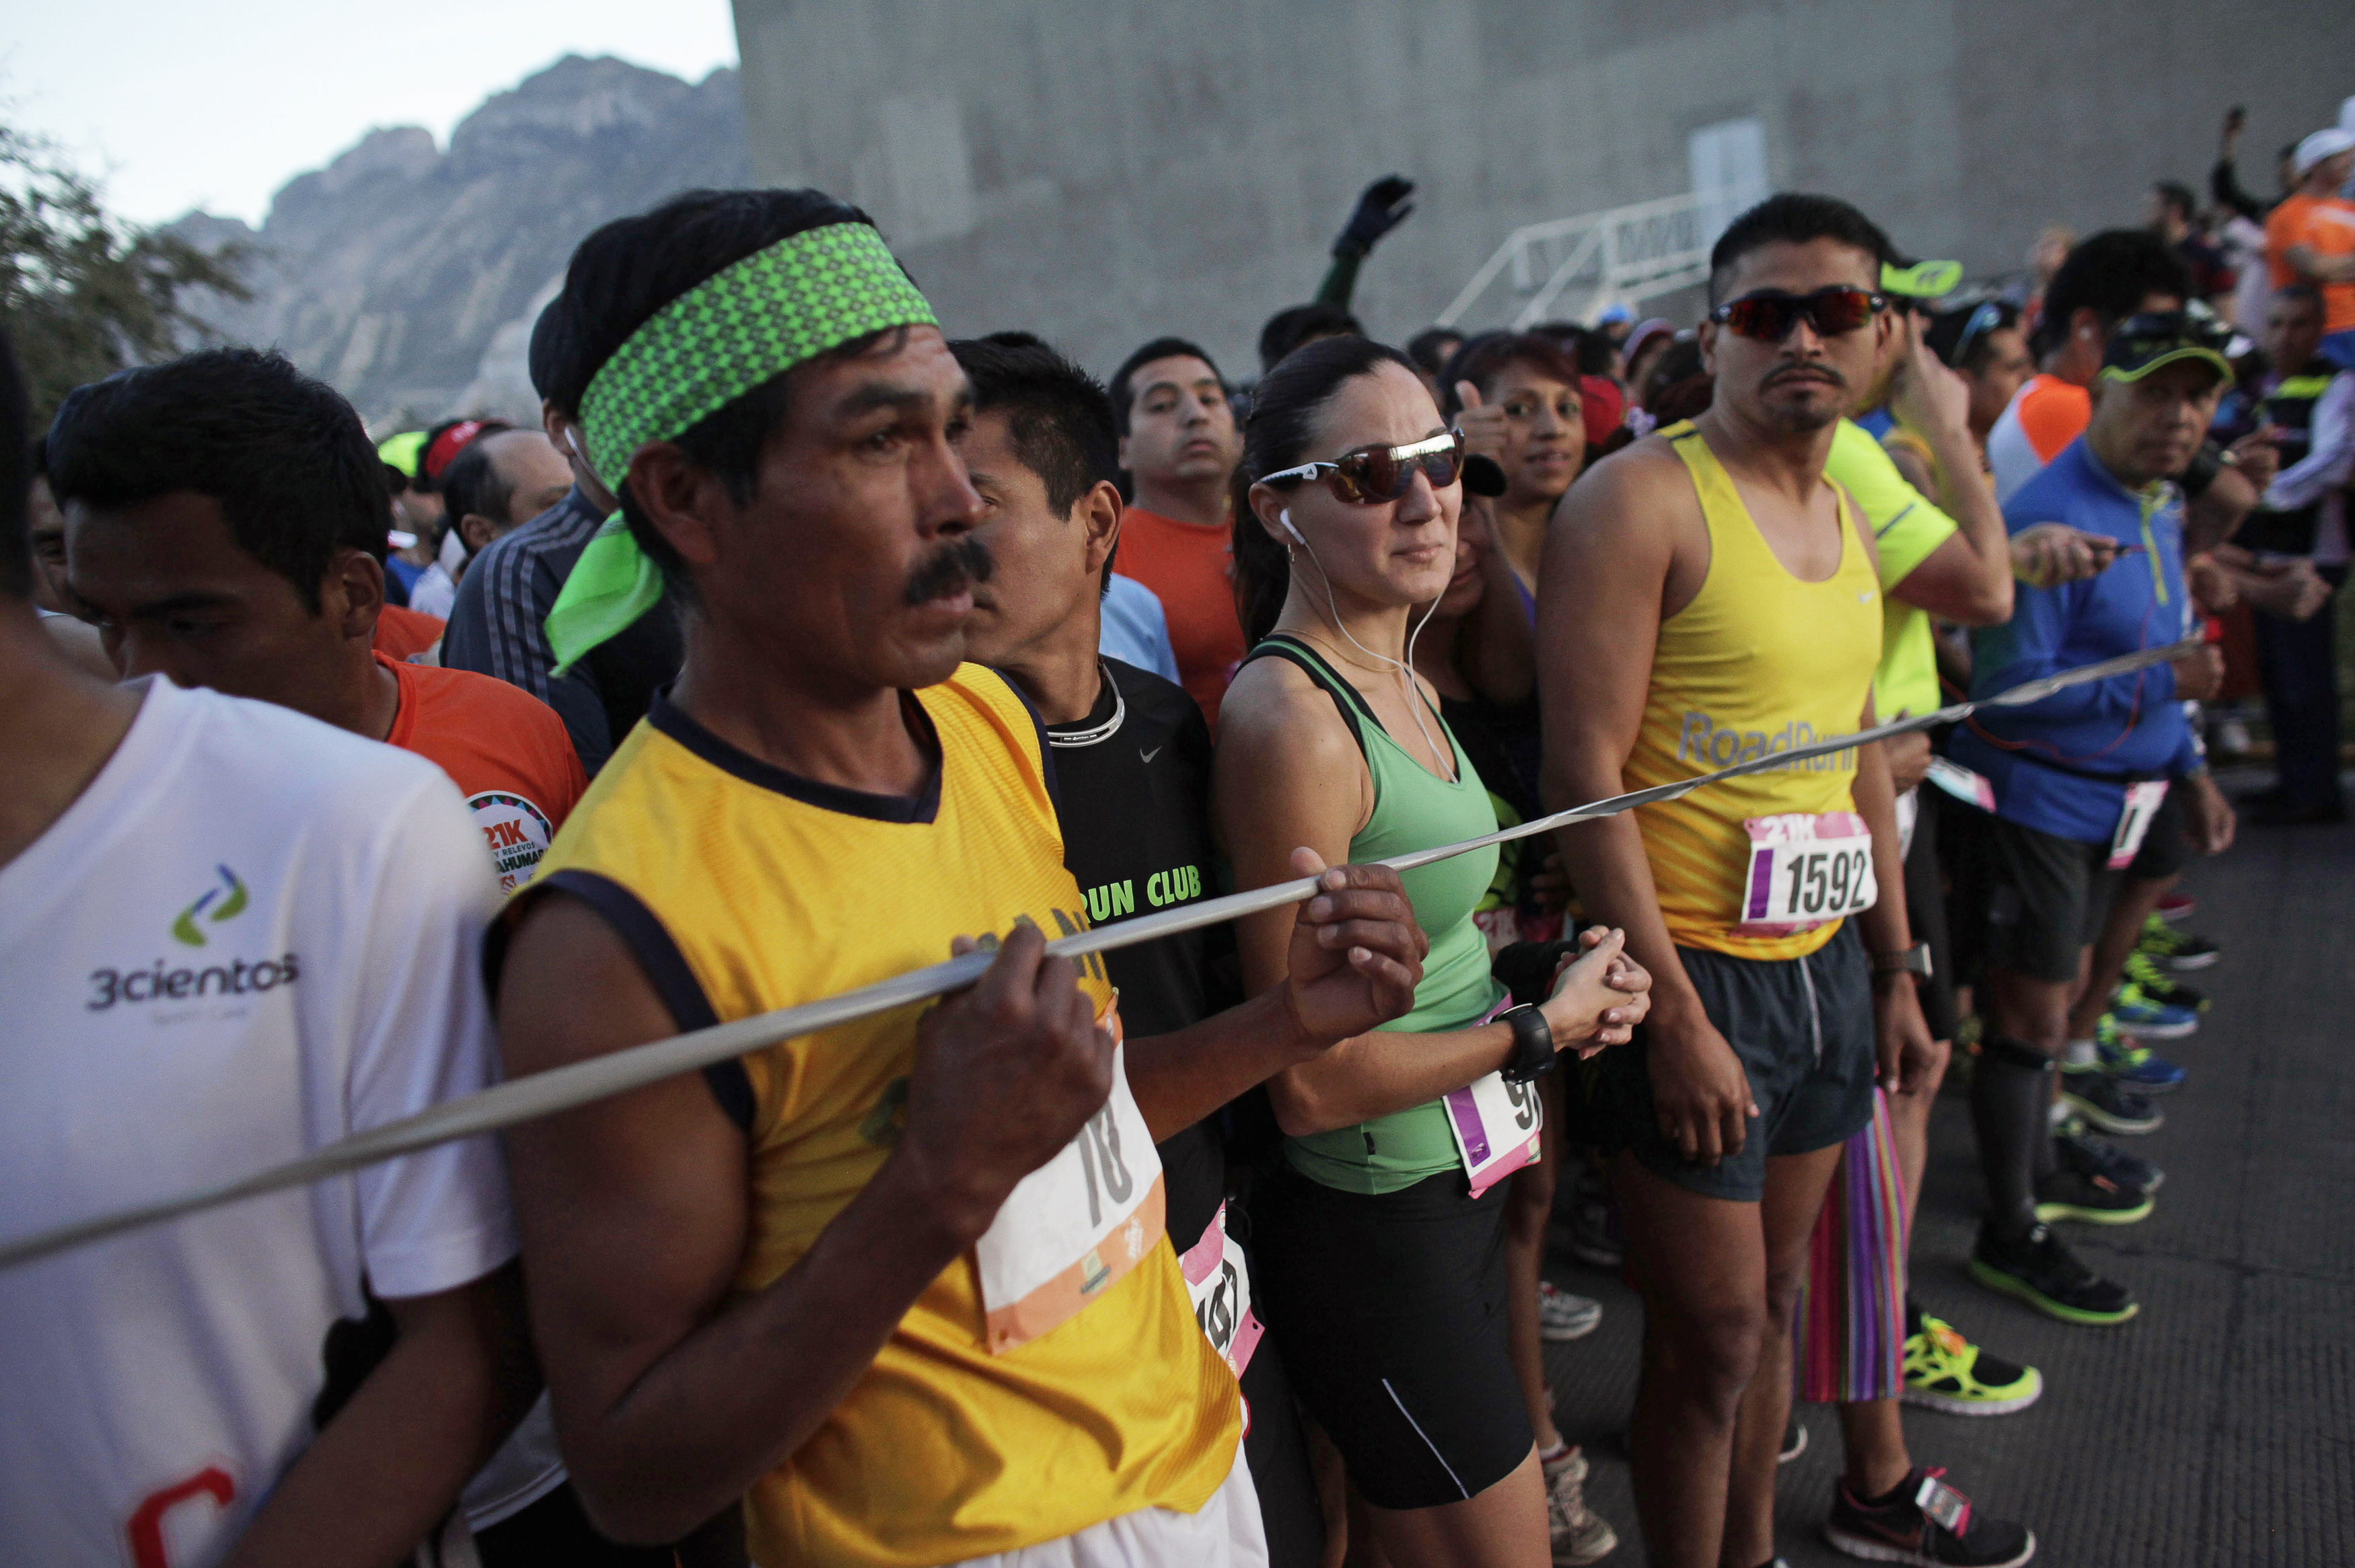 A Tarahumara man (front L) prepares next to other athletes before competing in a 21 km (13 miles) marathon in San Pedro Garza Garcia, on the outskirts of Monterrey, February 16, 2014.